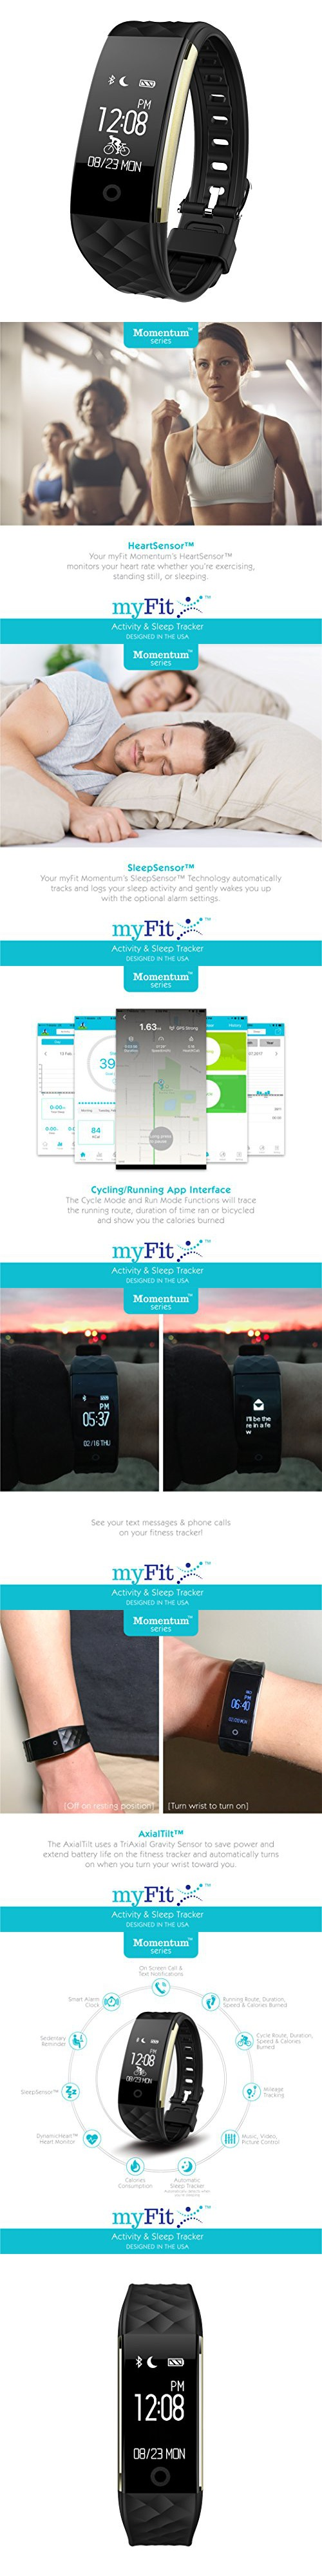 [New] myFit Momentum 2 Run & Cycle Series Fitness Activity